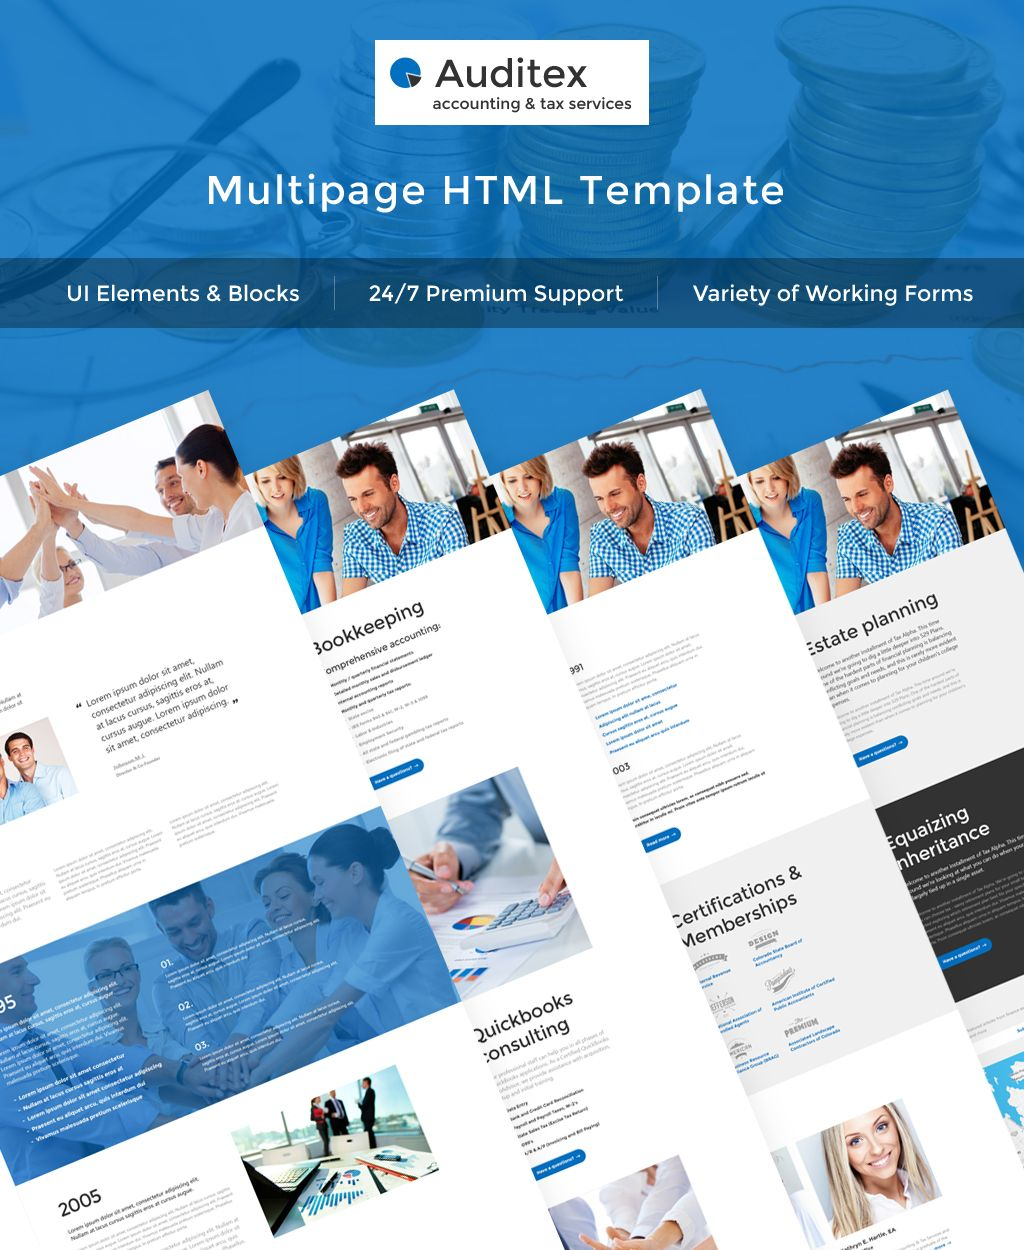 auditex accounting and tax services multipage website template